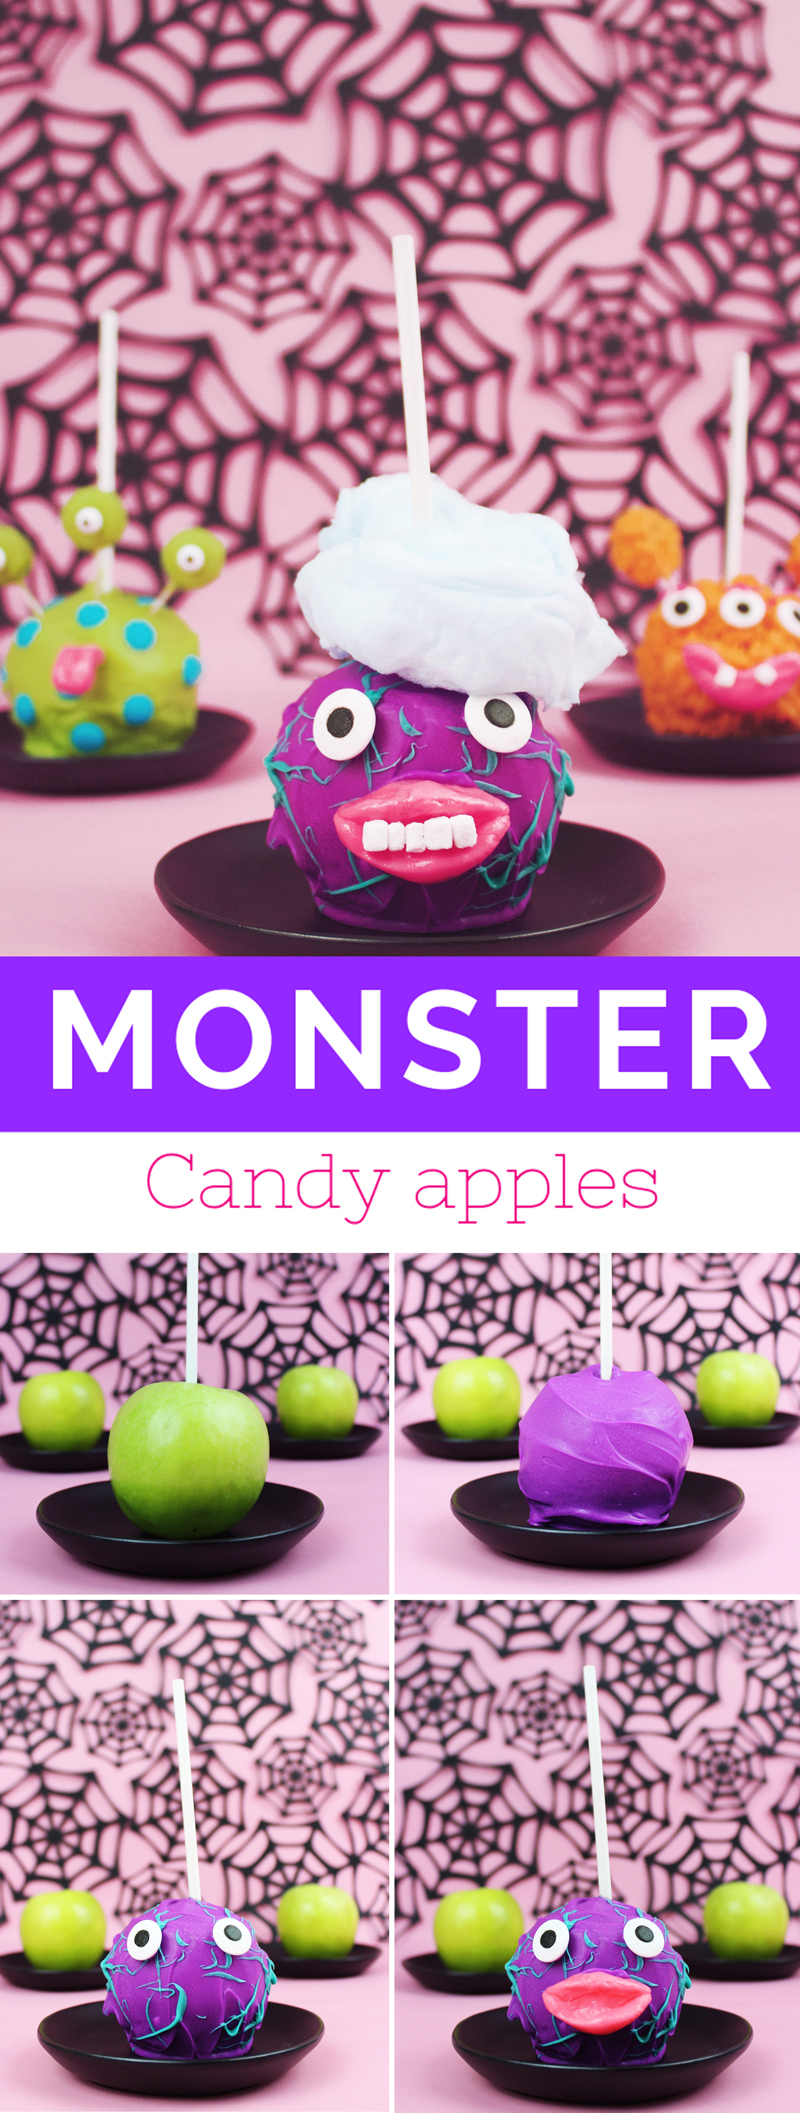 Make these monster candy apples